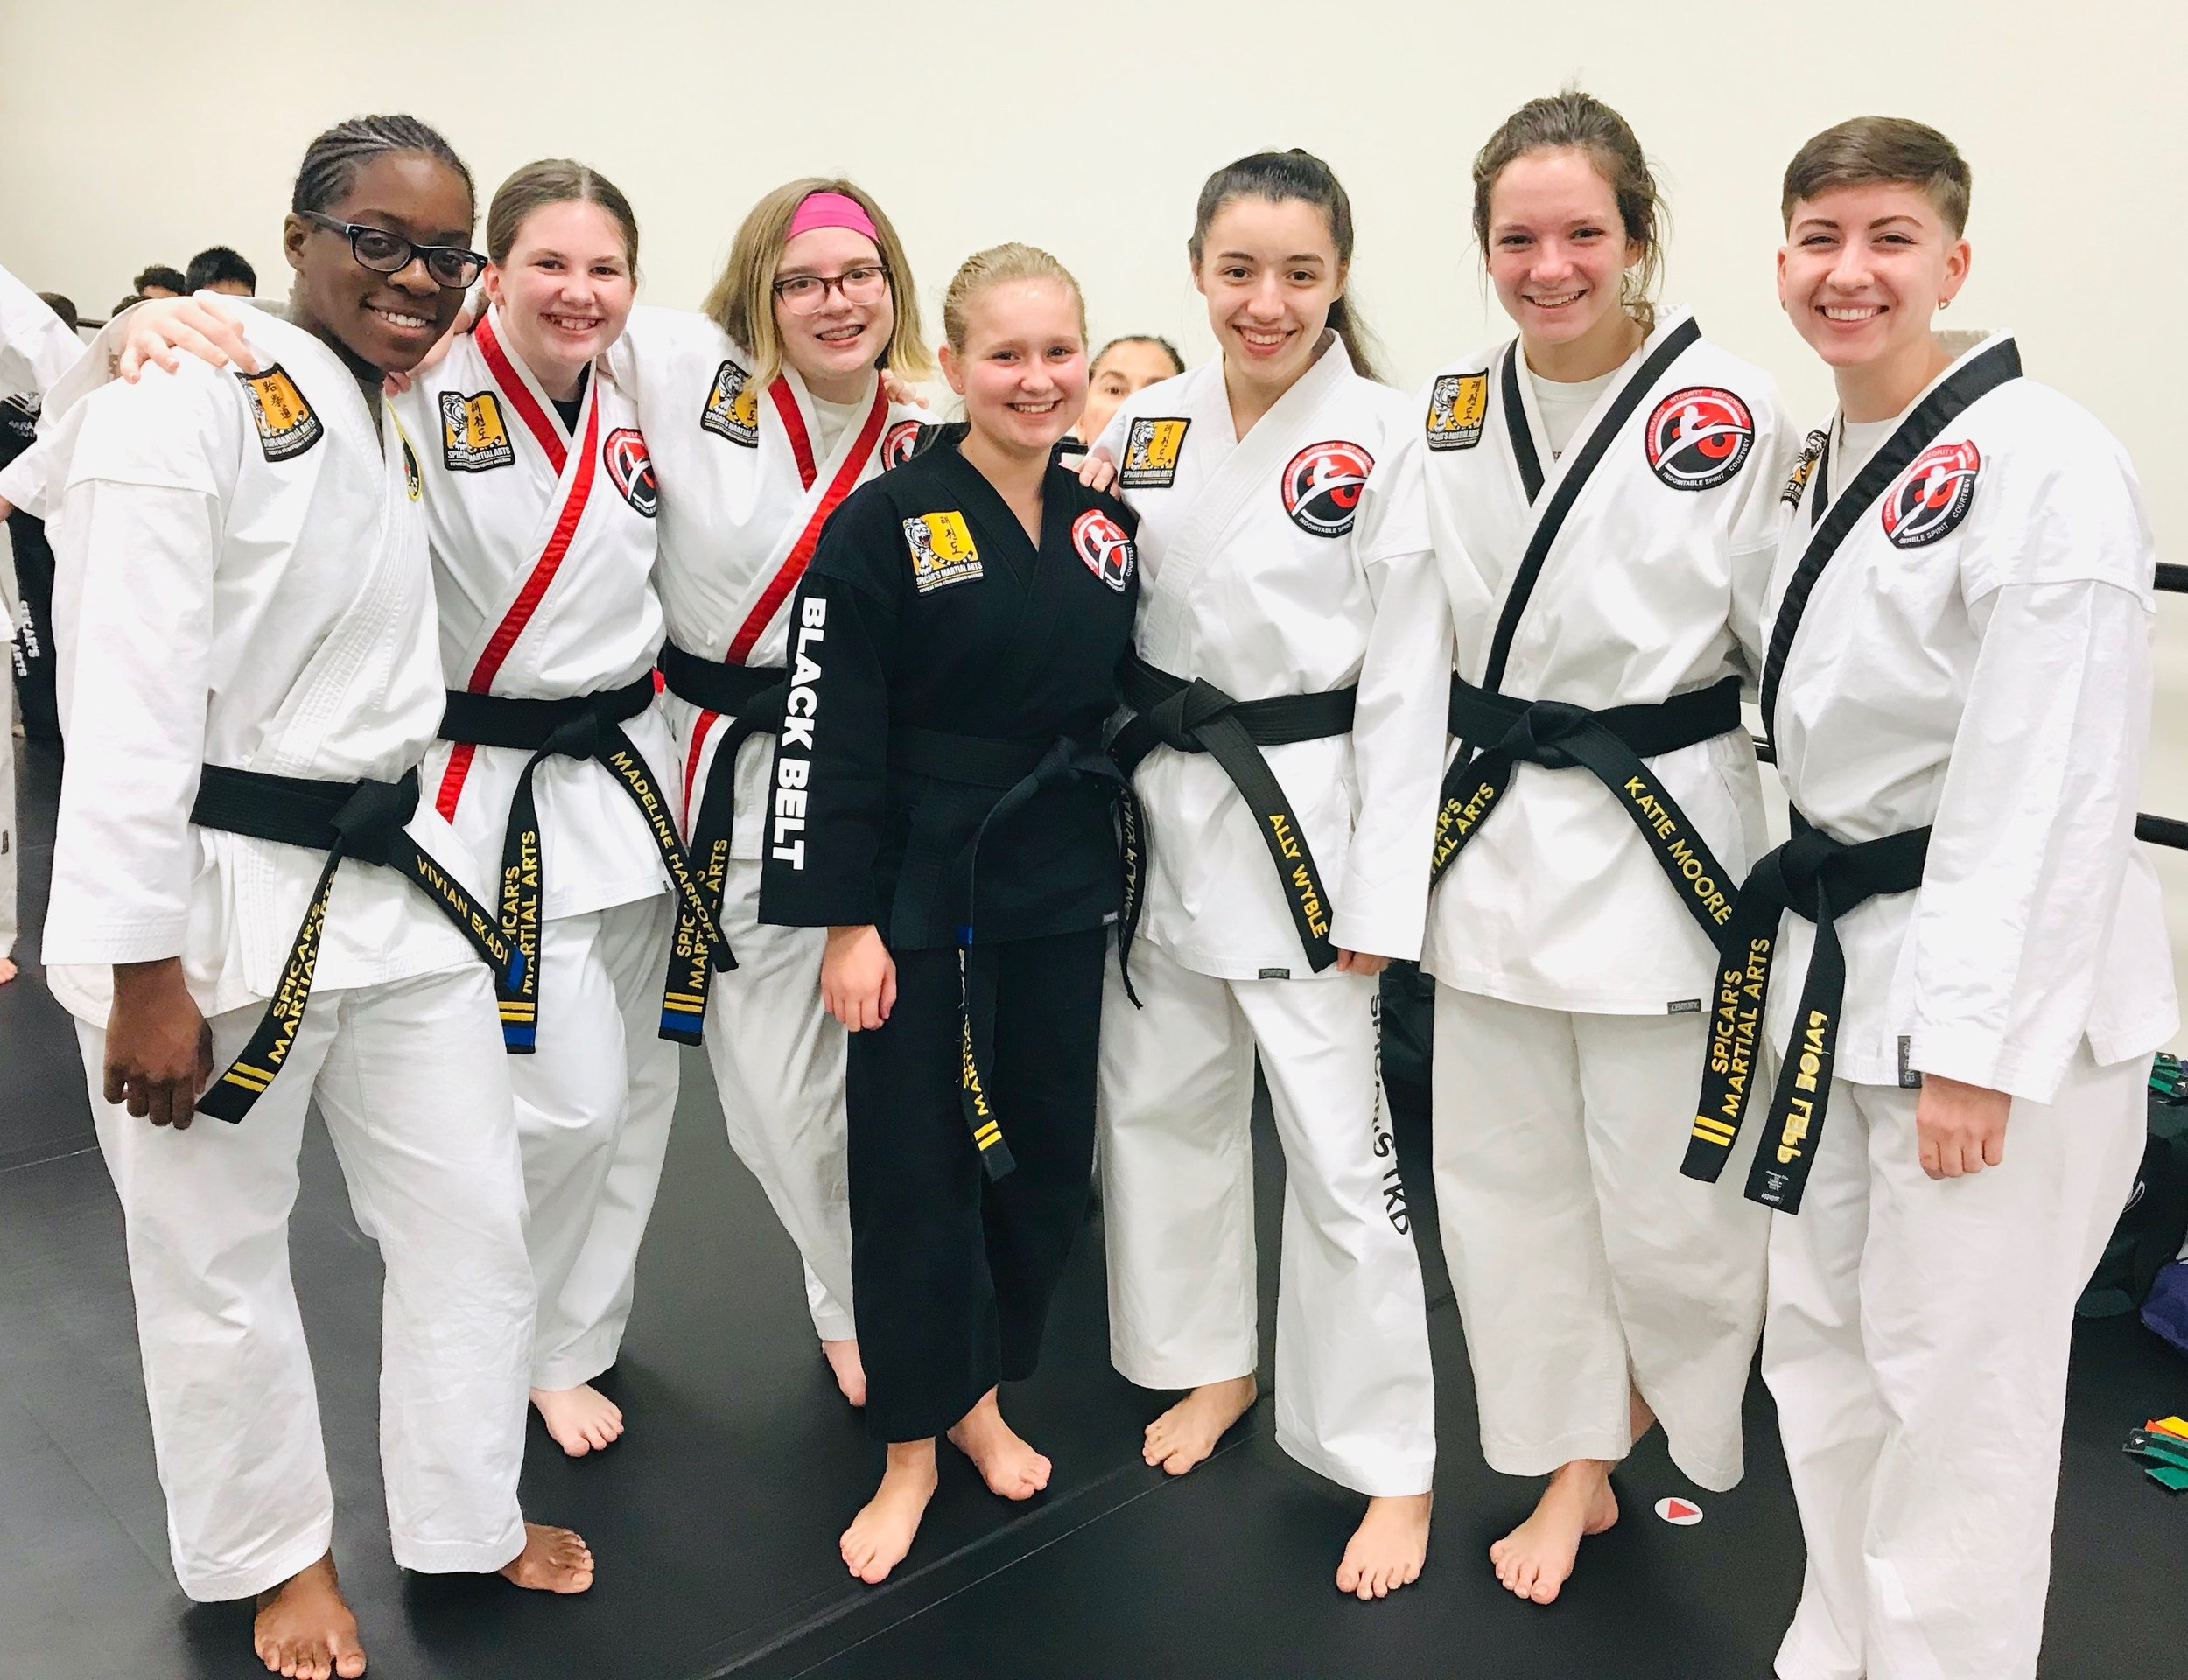 Here are some of our martial arts girls. They are awesome and they rock every class!